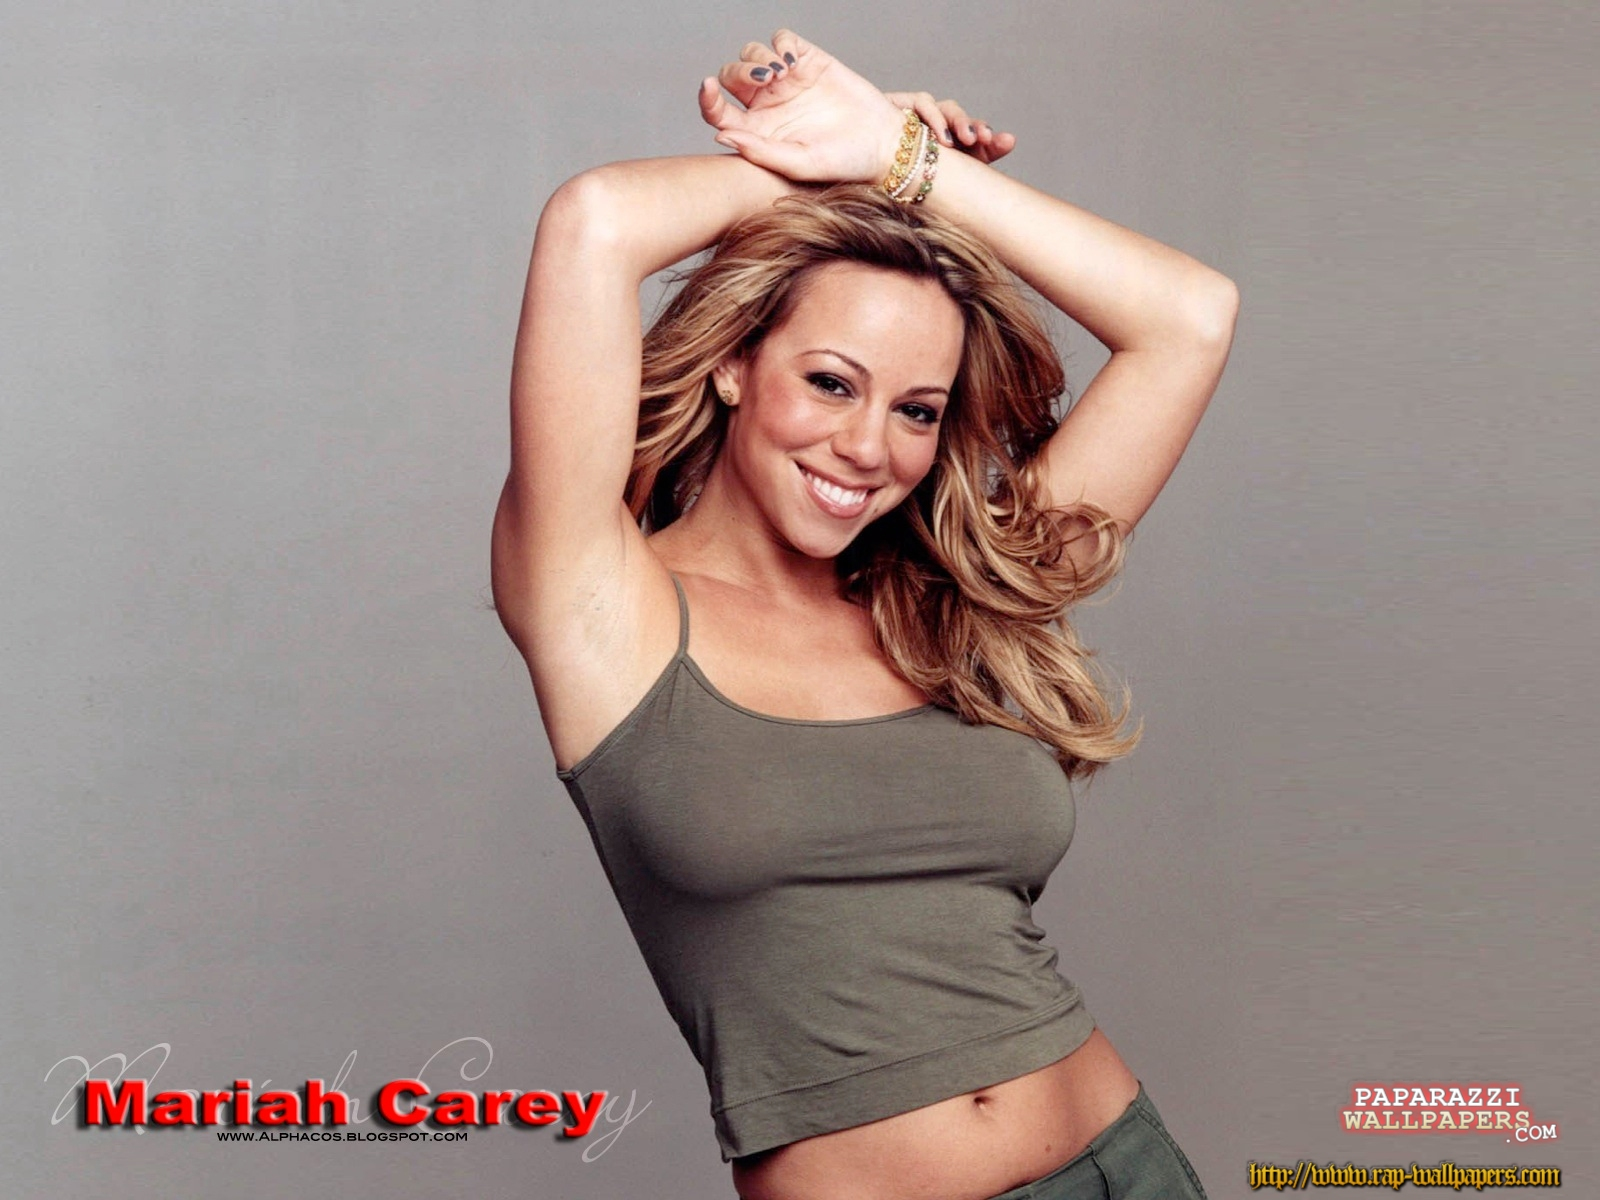 mariah carey wallpapers 052